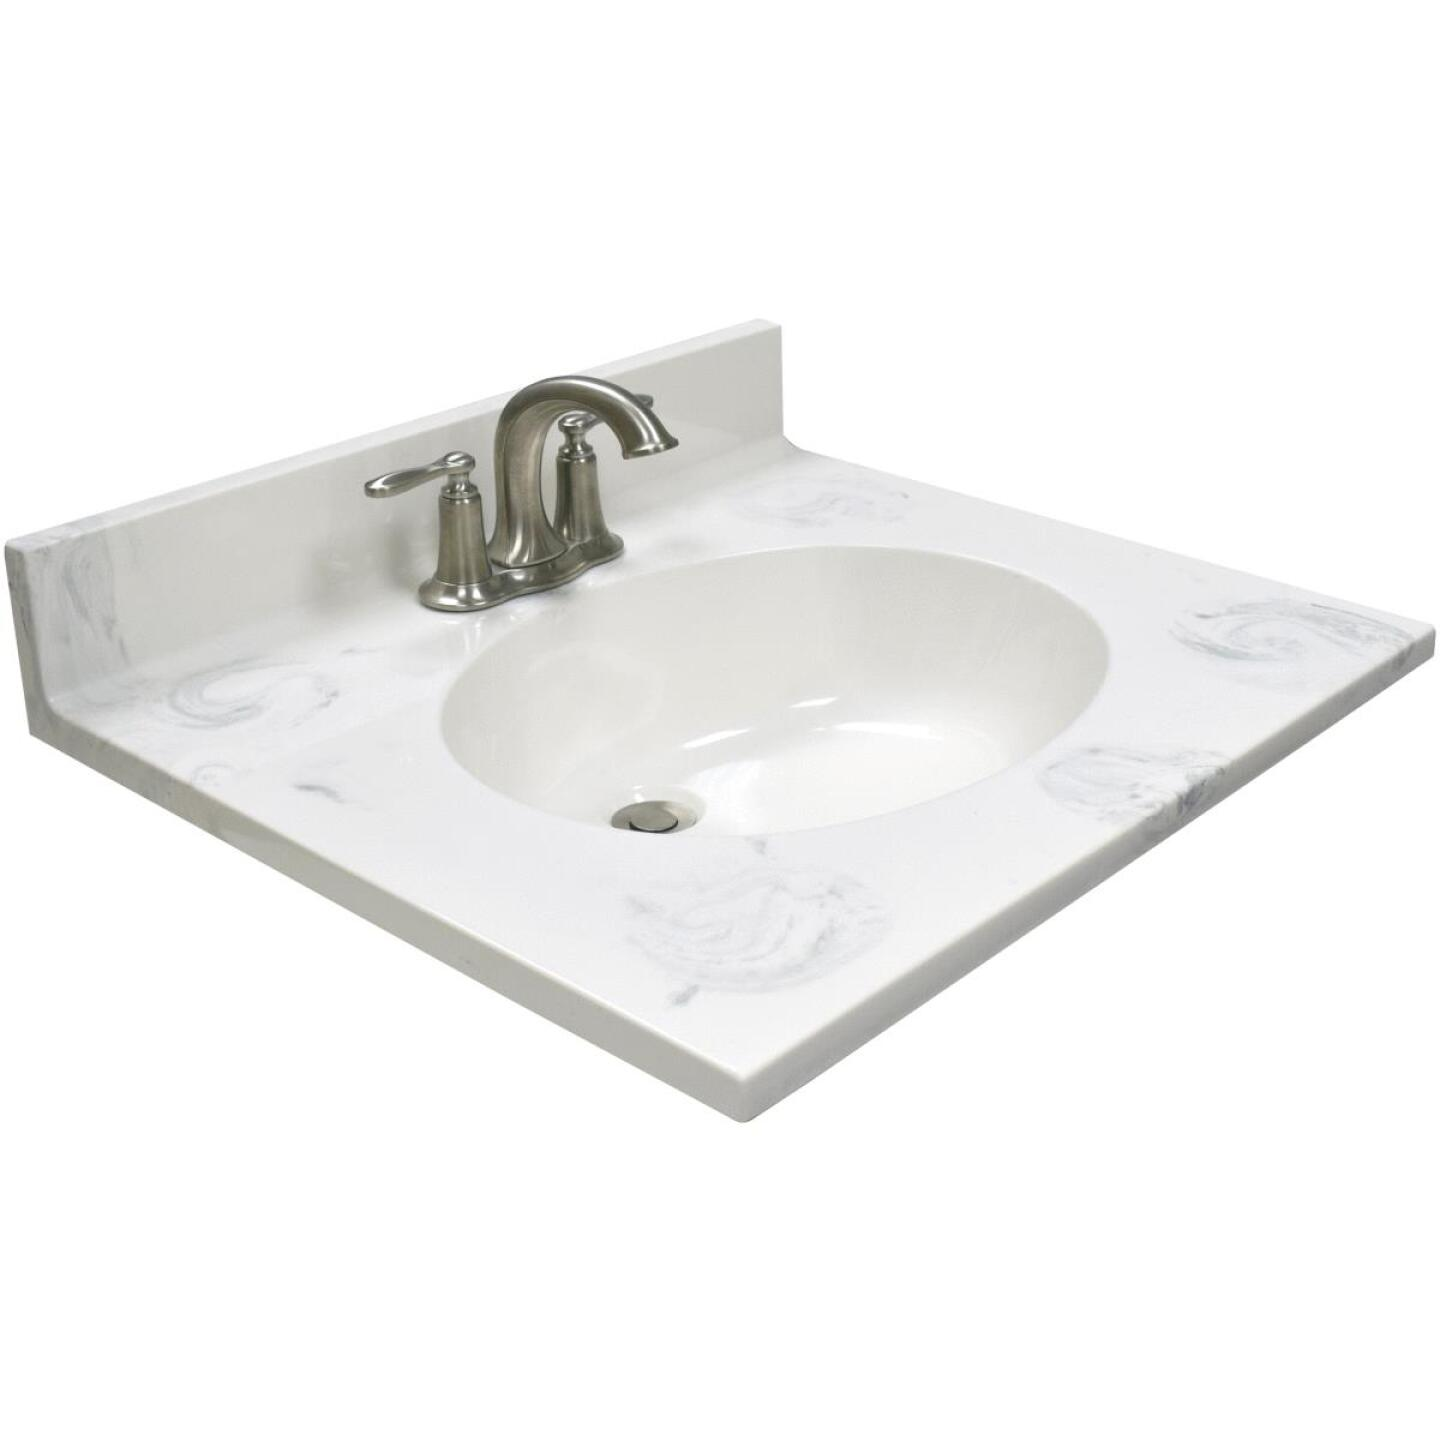 Modular Vanity Tops 25 In. W x 22 In. D Marbled Dove Gray Cultured Marble Vanity Top with Oval Bowl Image 1